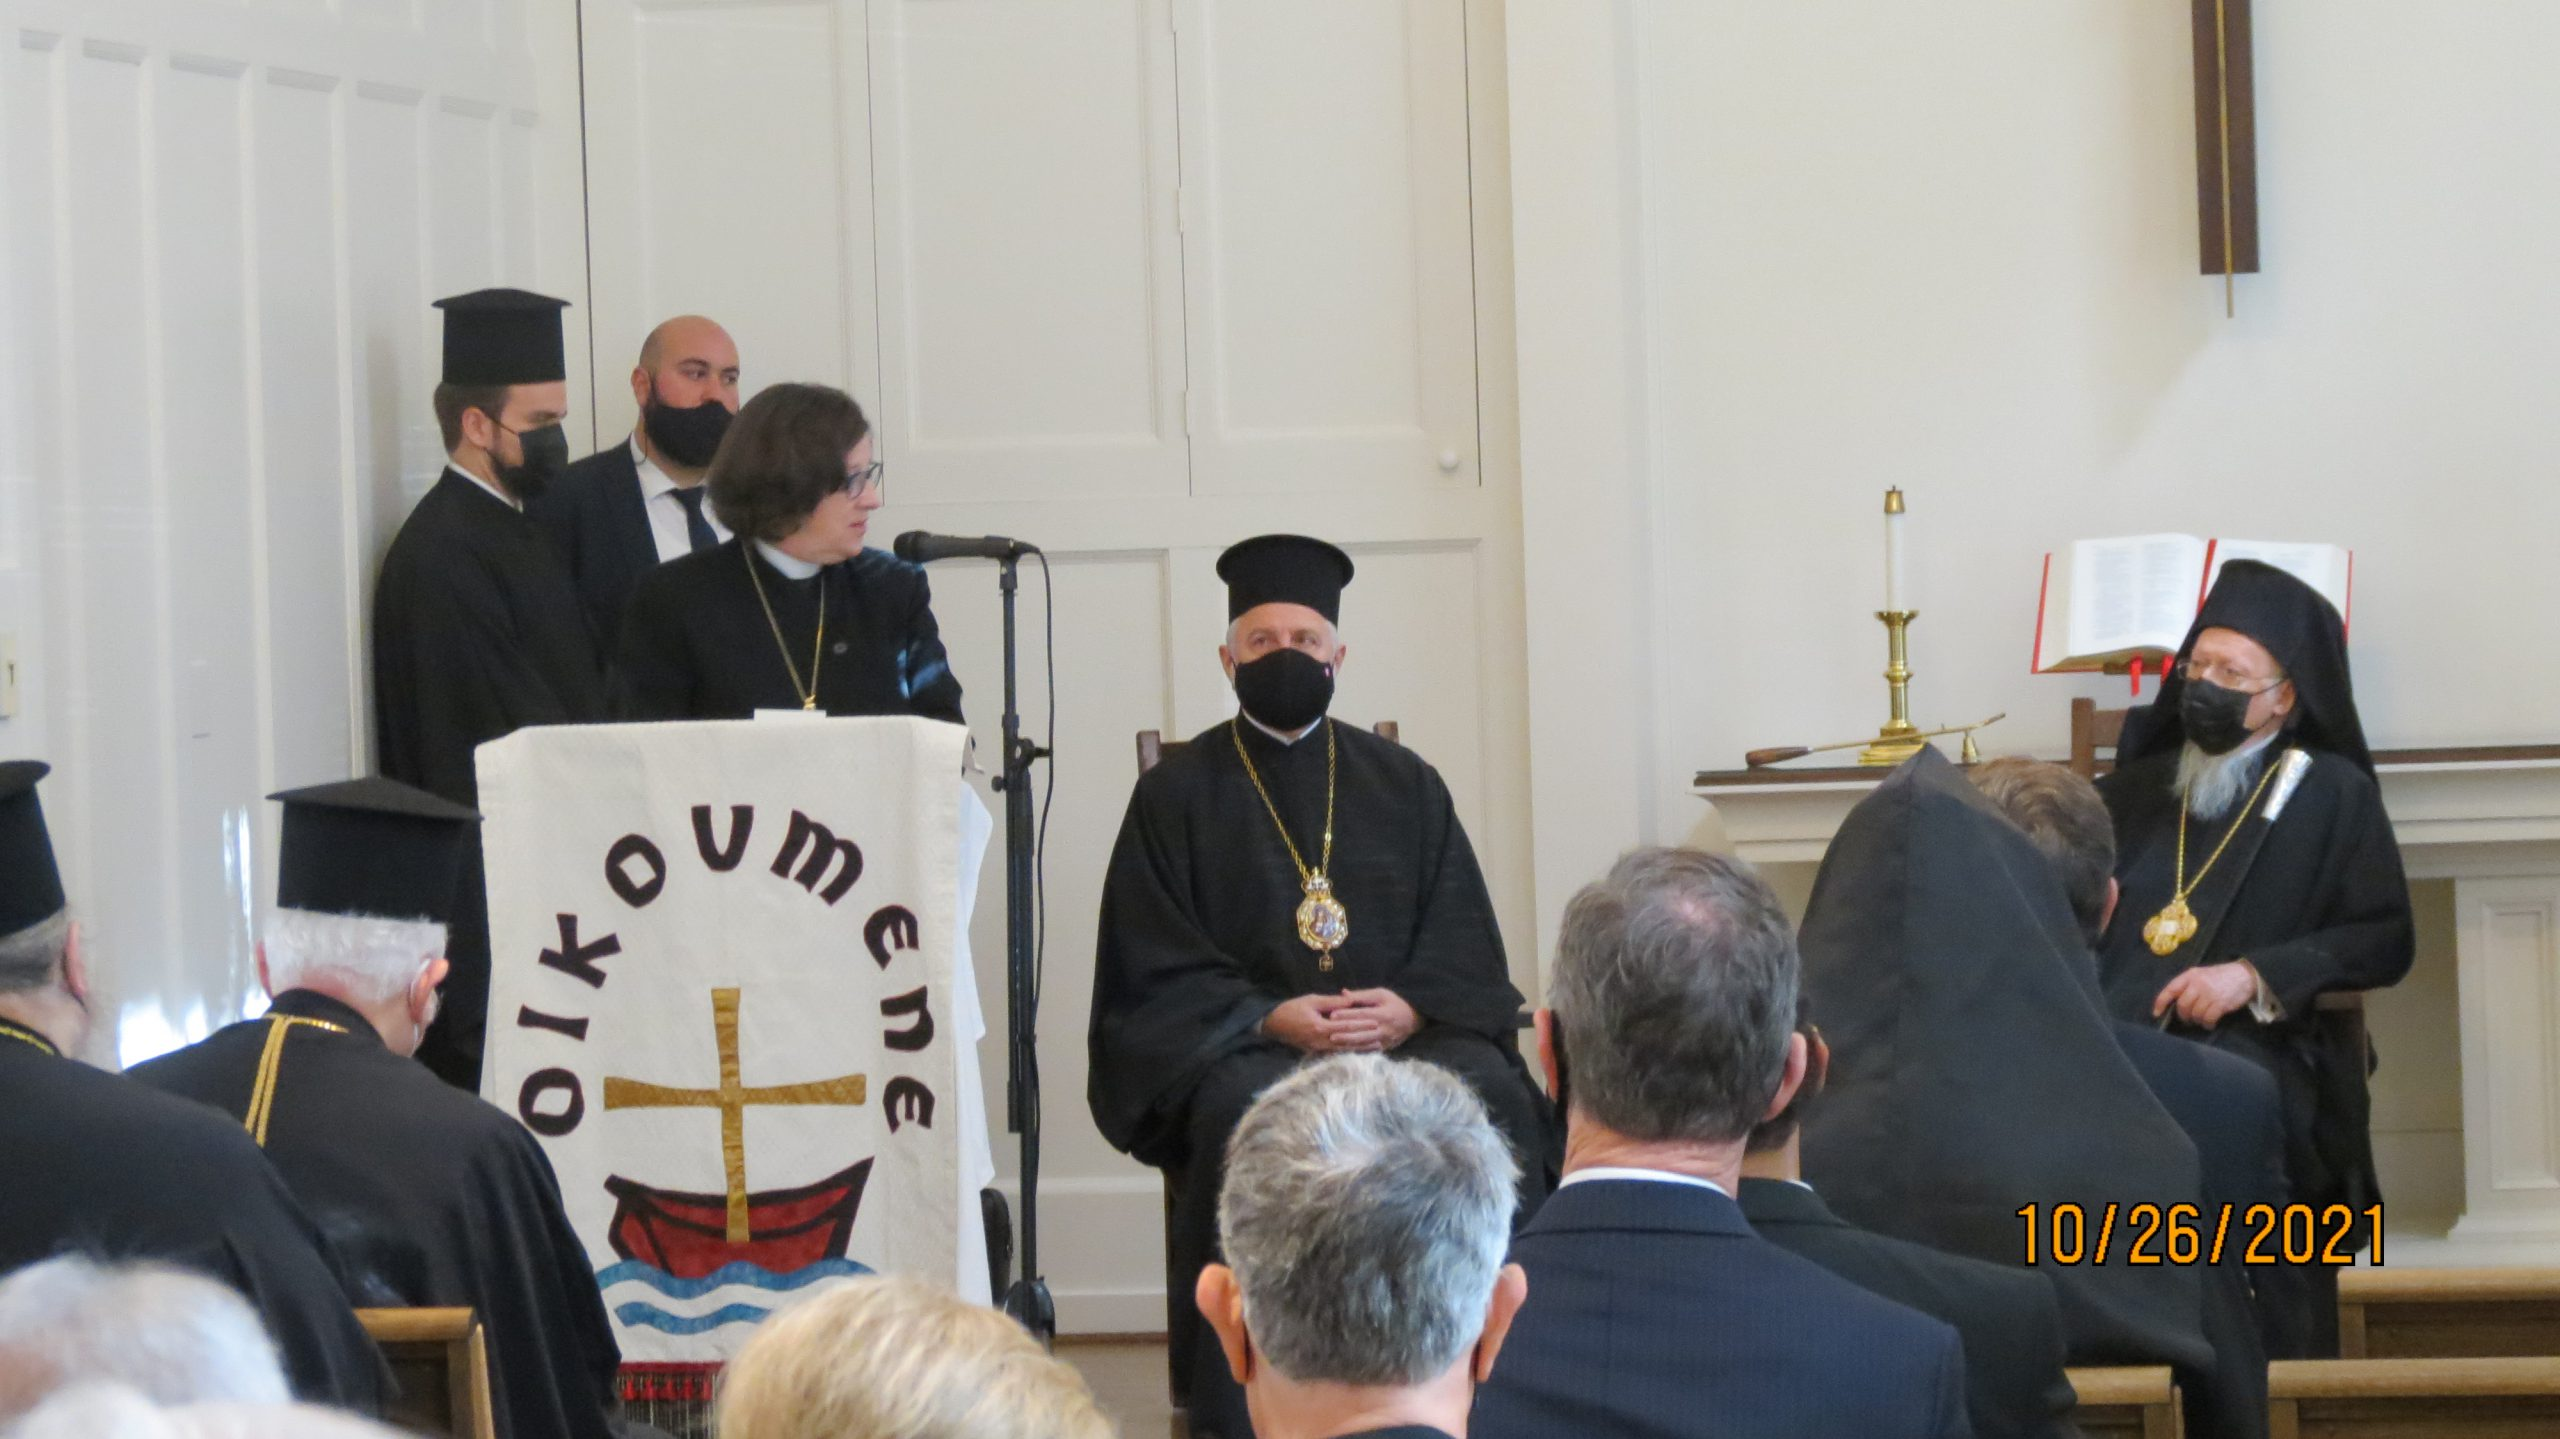 Gift of a Cross presented by Bishop Elizabeth Eaton, NCC Governing Board Vice Chair